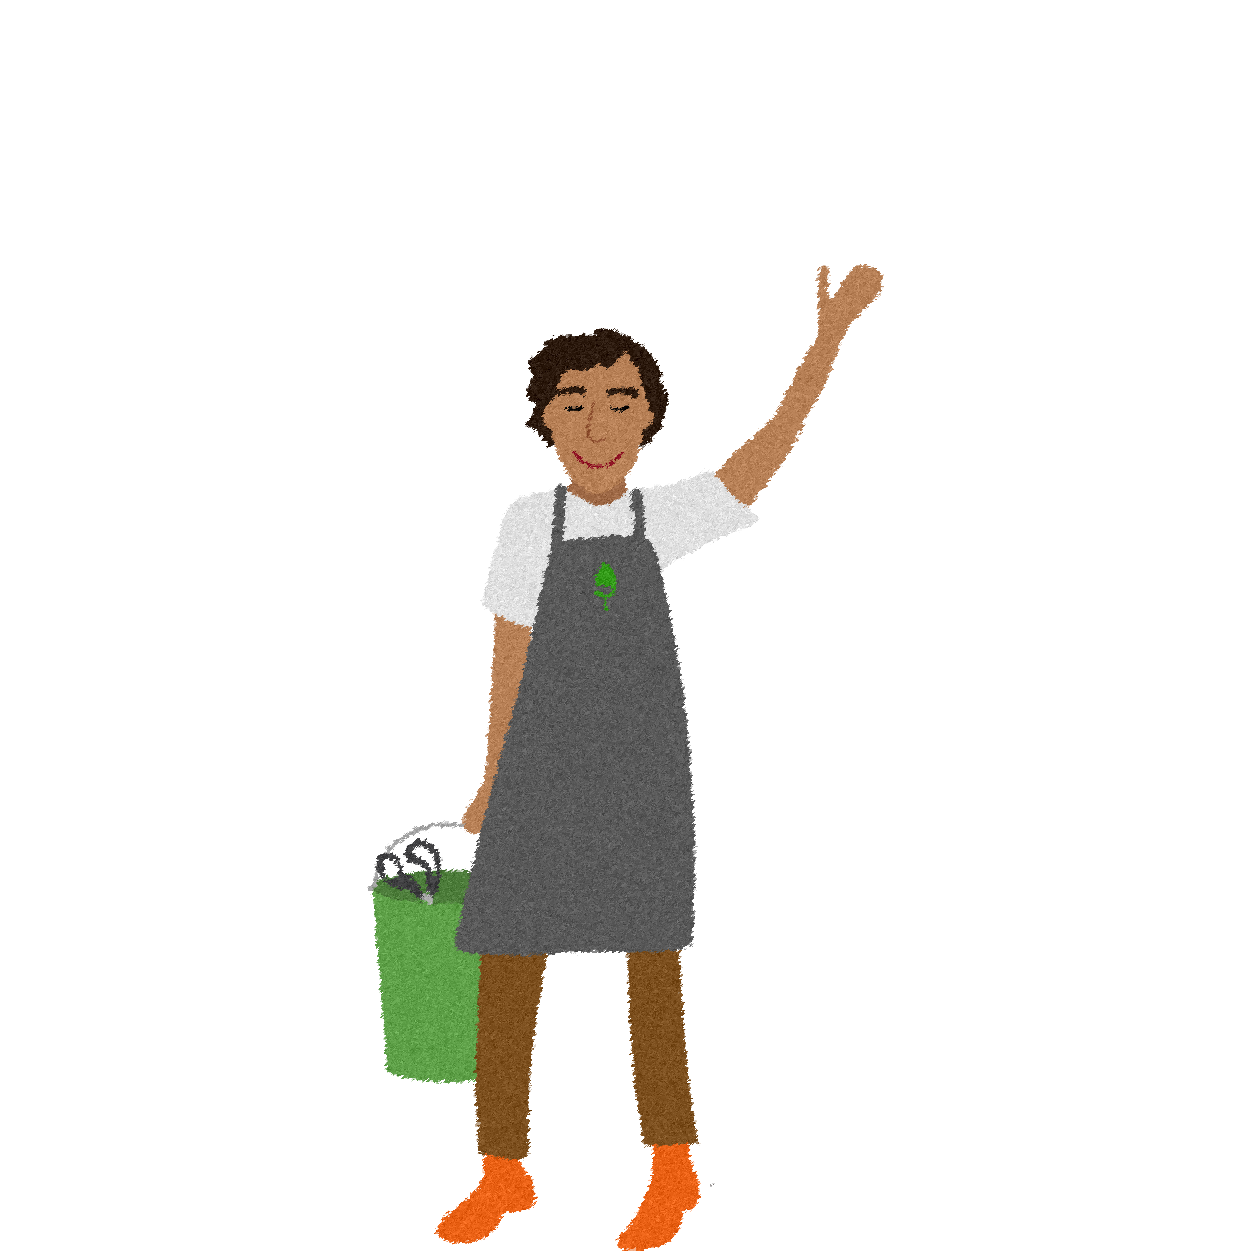 CorporateClientsPage_illustrations-05.png